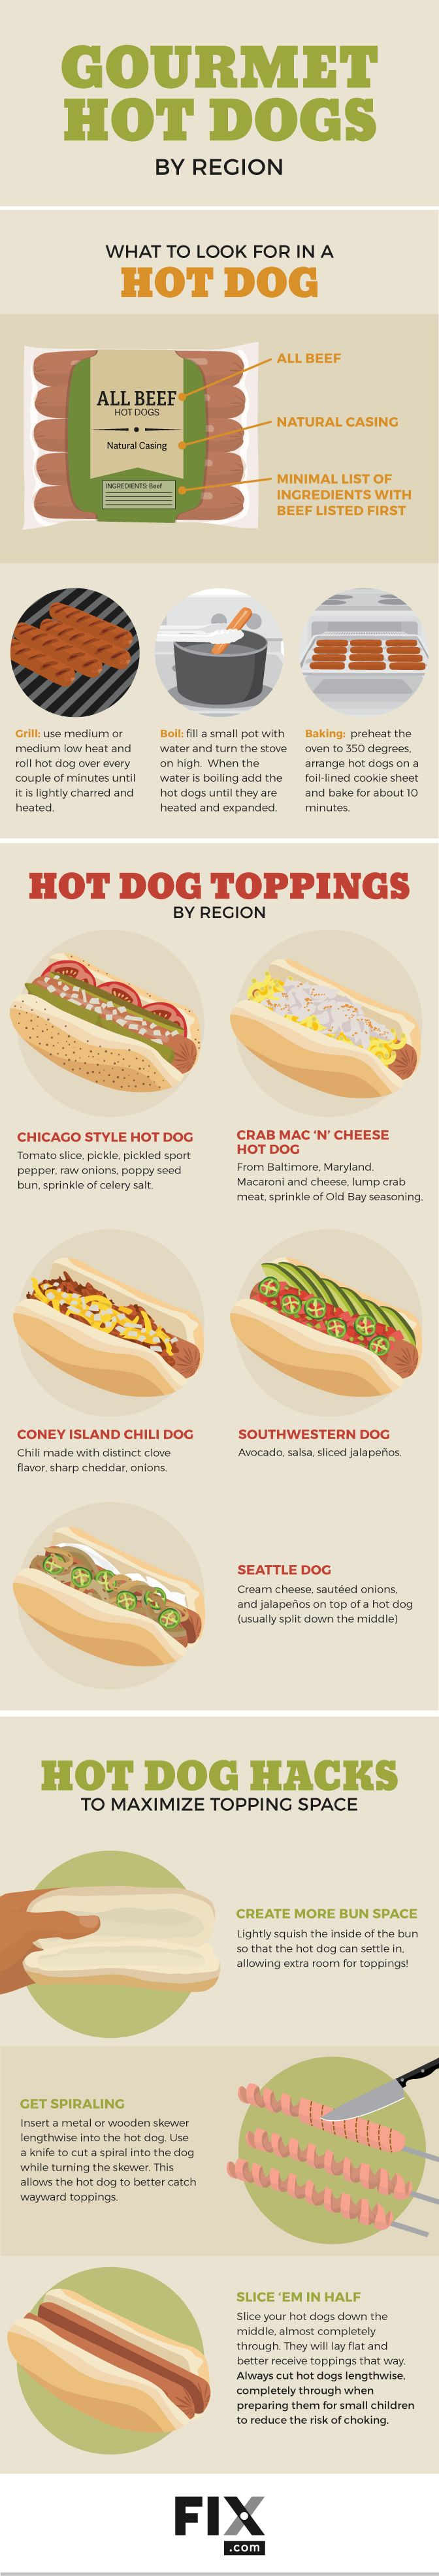 You don't need to be in Chicago or Seattle to have a unique and delicious hot dog! Read our recipes for gourmet hot dogs here.